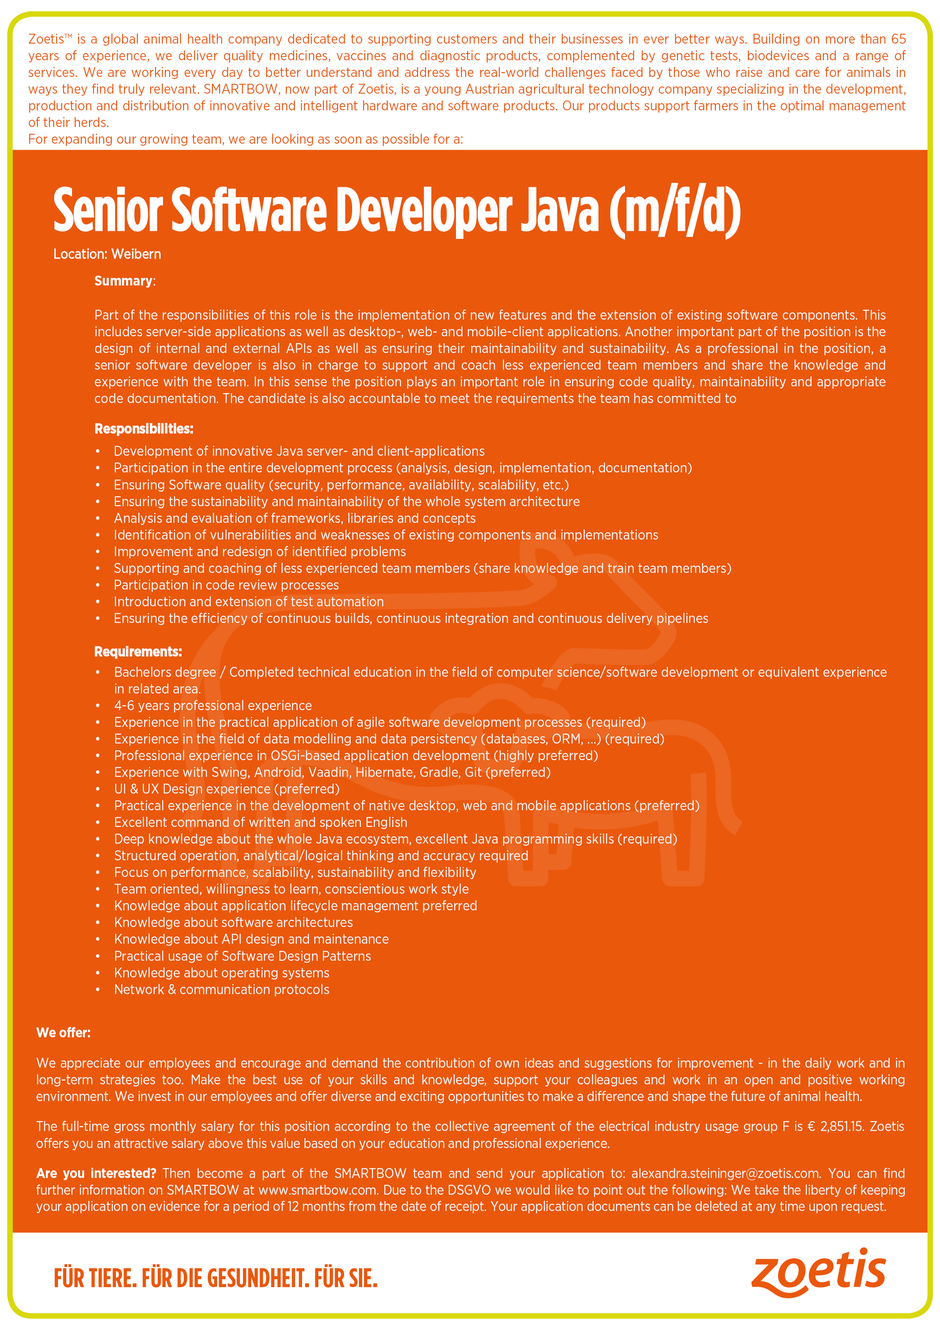 Software Developer Jobs - Senior Software Developer Java - Smartbow GmbH - Weibern - Oberösterreich - 1